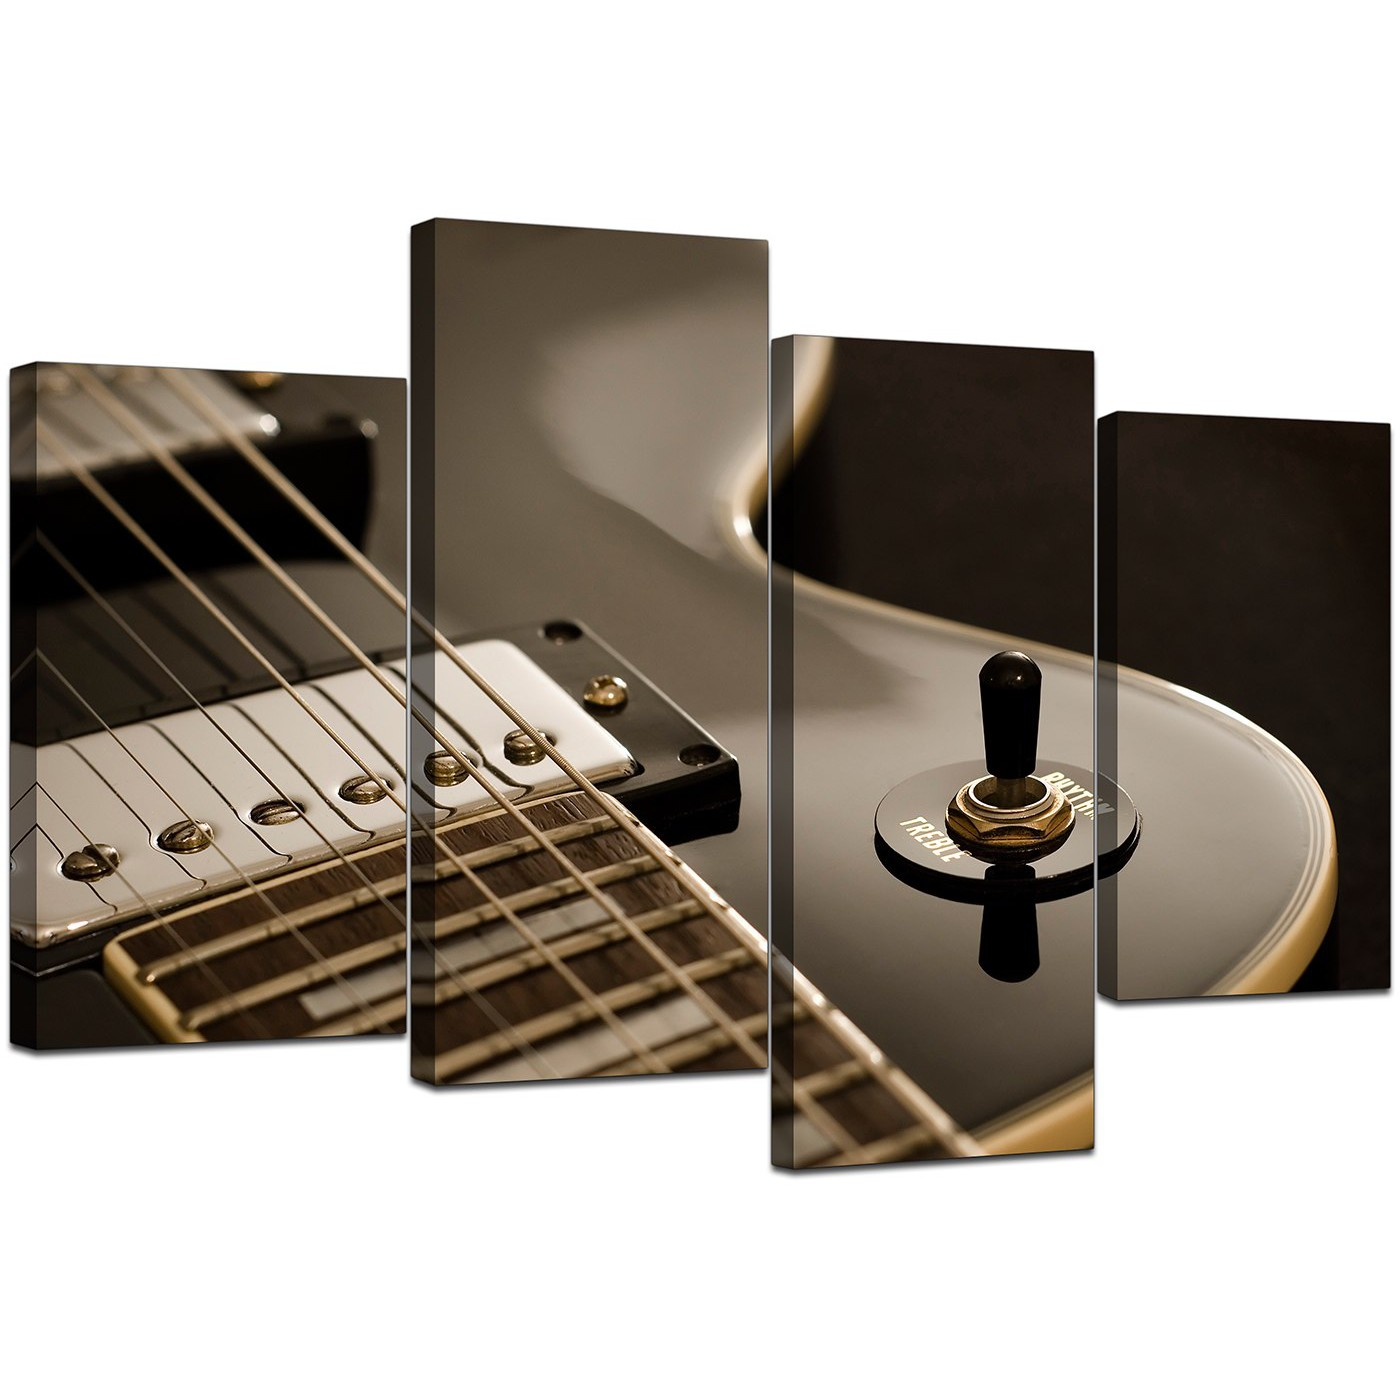 Black And White Artwork For Bedroom Black White Electric Guitar Gibson Music Canvas Split 4 Panel 130cm 4125